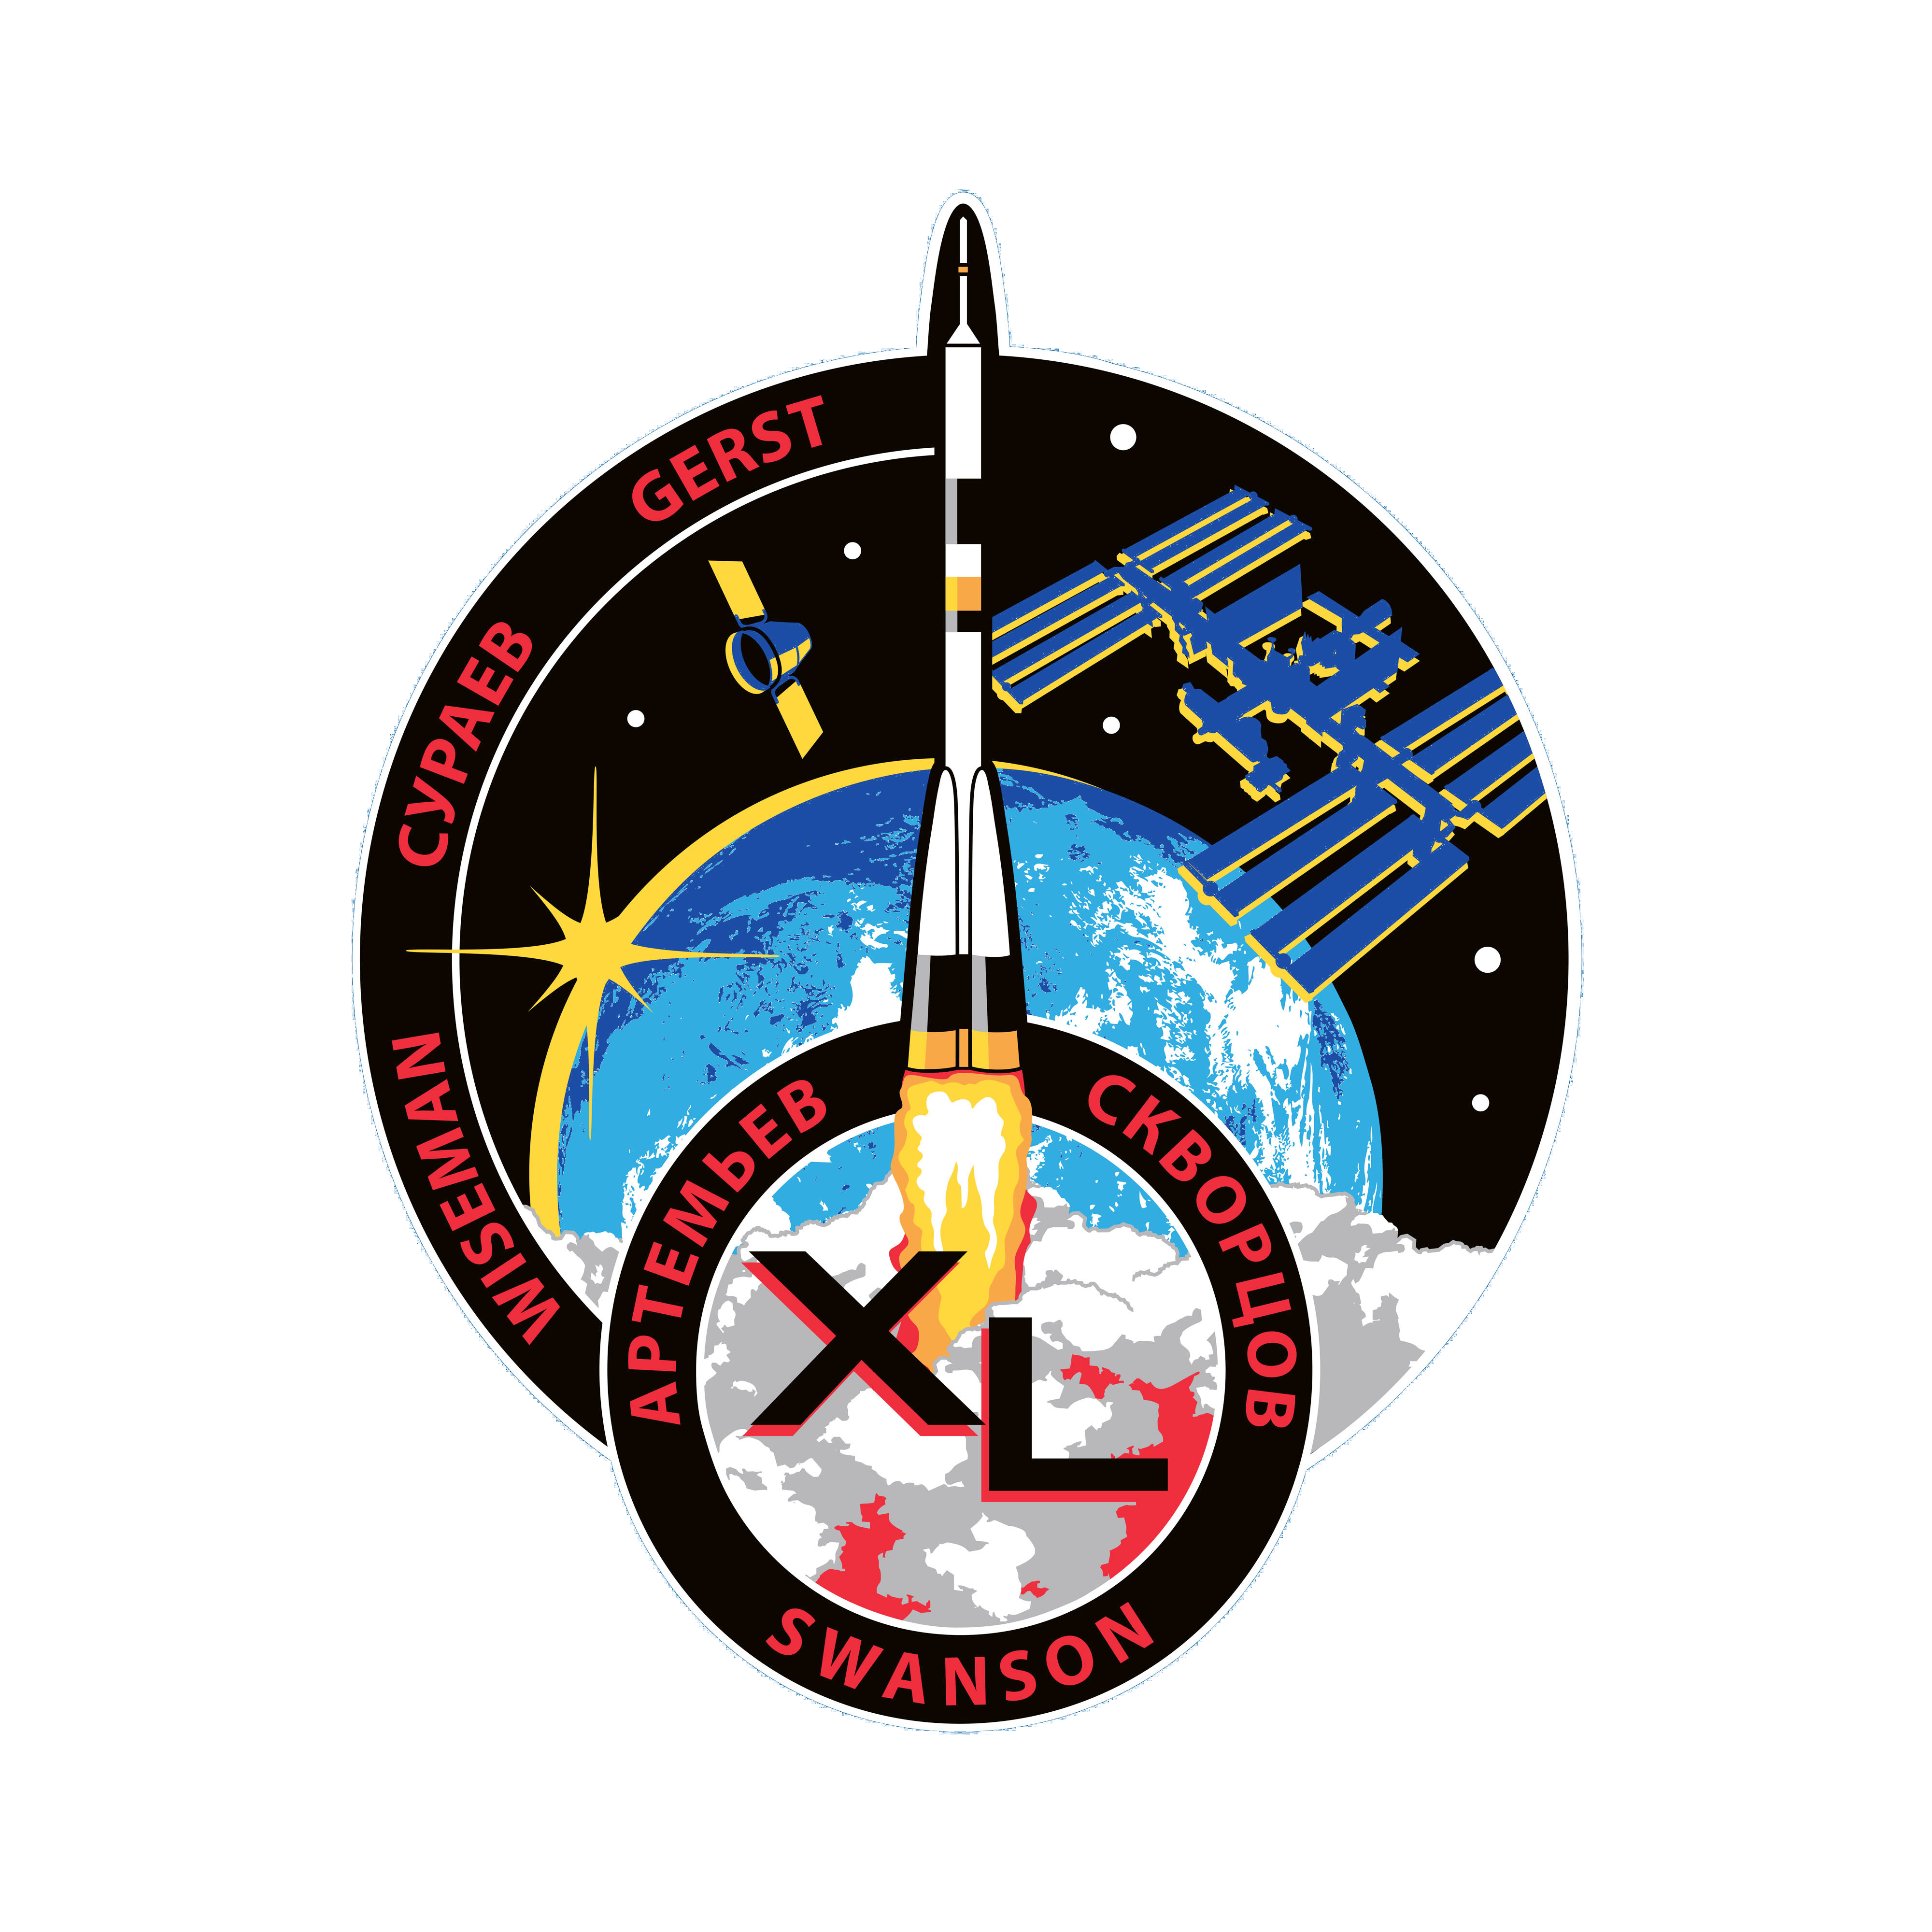 Mission Patches On Mission 4 To The International Space: ISS Expedition 40 Patch, 2014